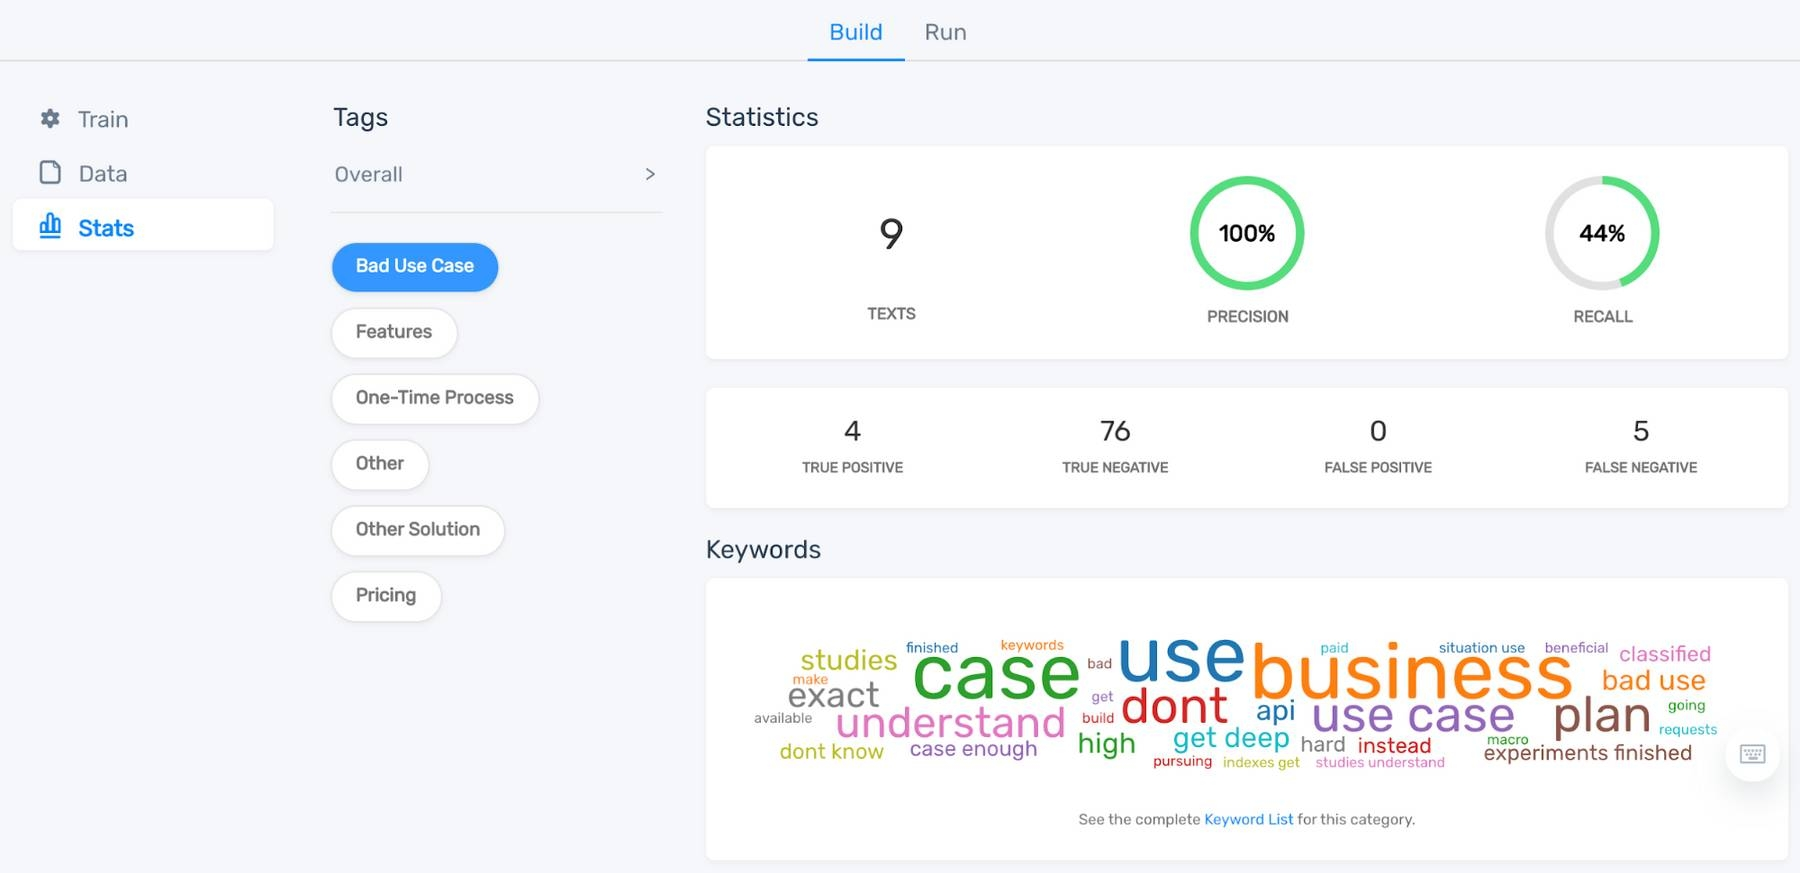 Dashboard showing statistics and keyword cloud for 'Bad Use Case.'